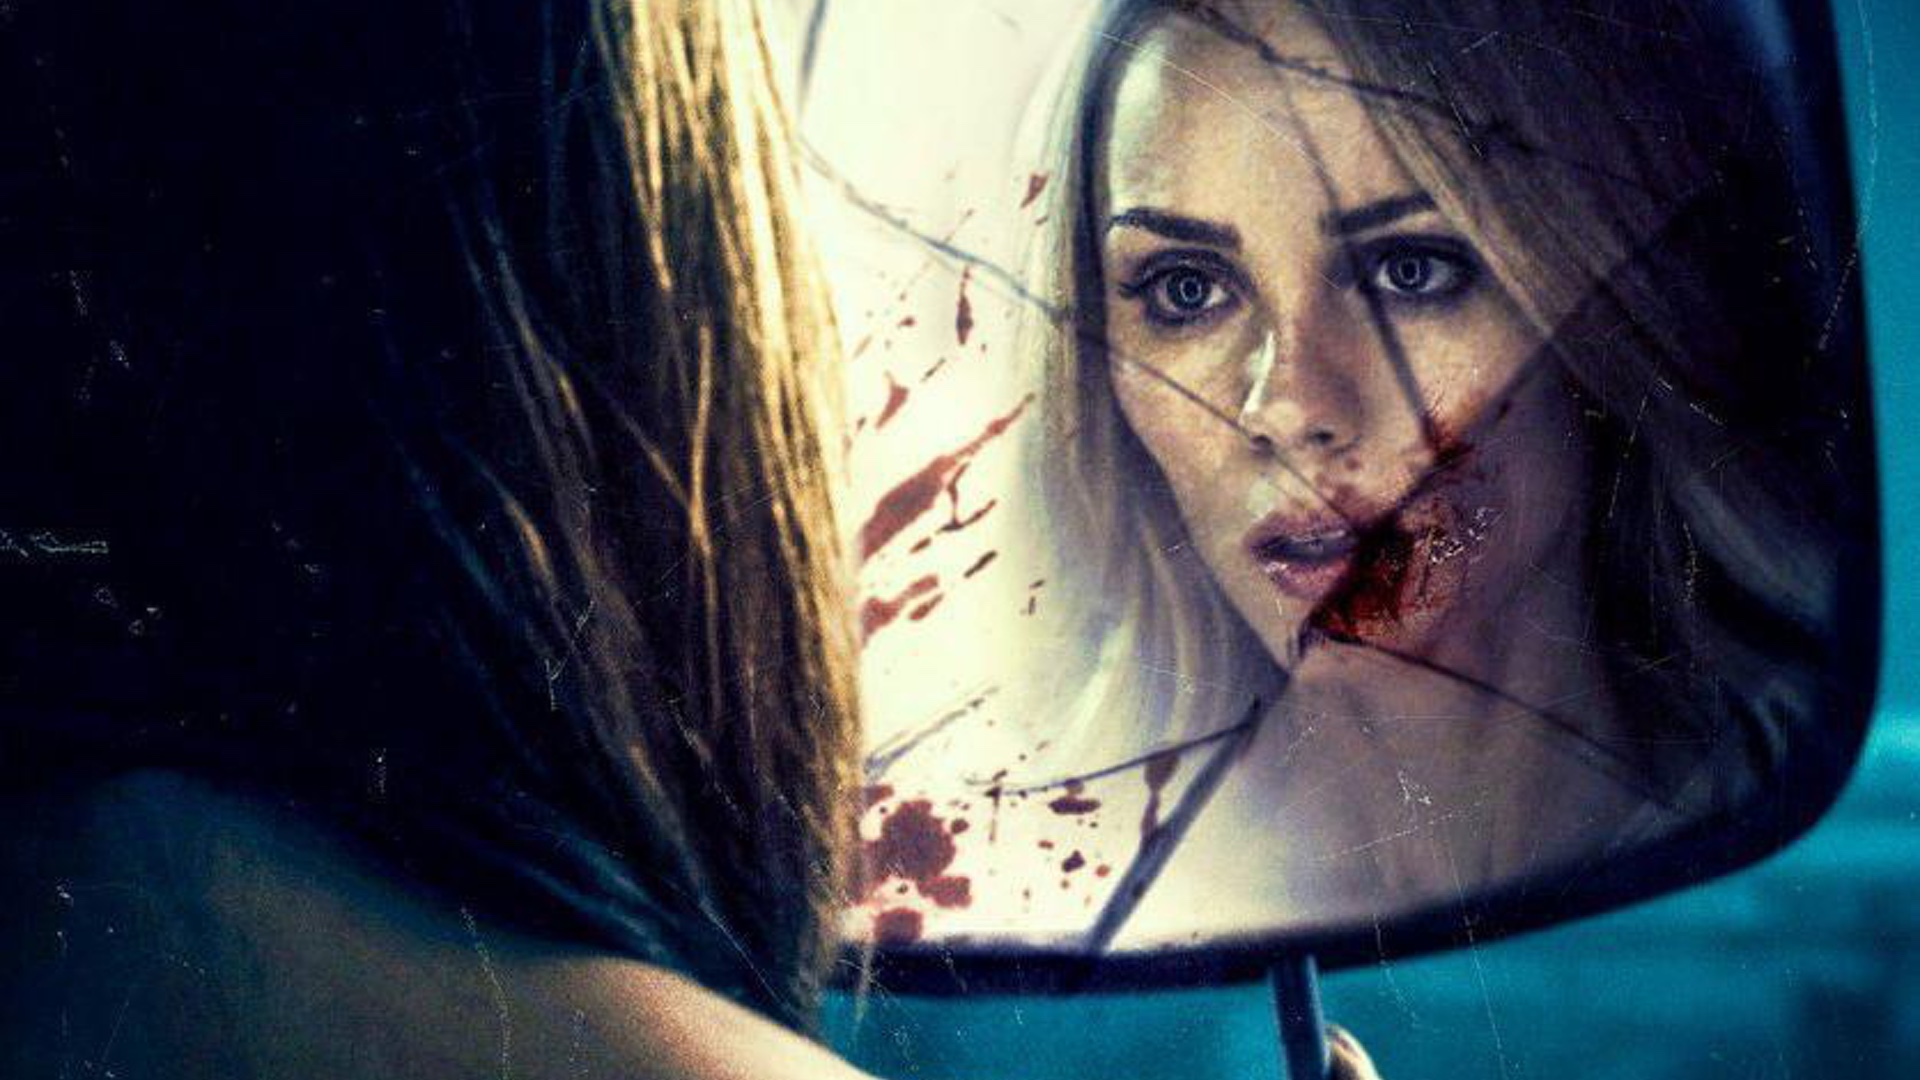 twisted-trailer-for-the-remake-of-david-cronenbergs-rabid-starring-laura-vandervoort-social.jpg